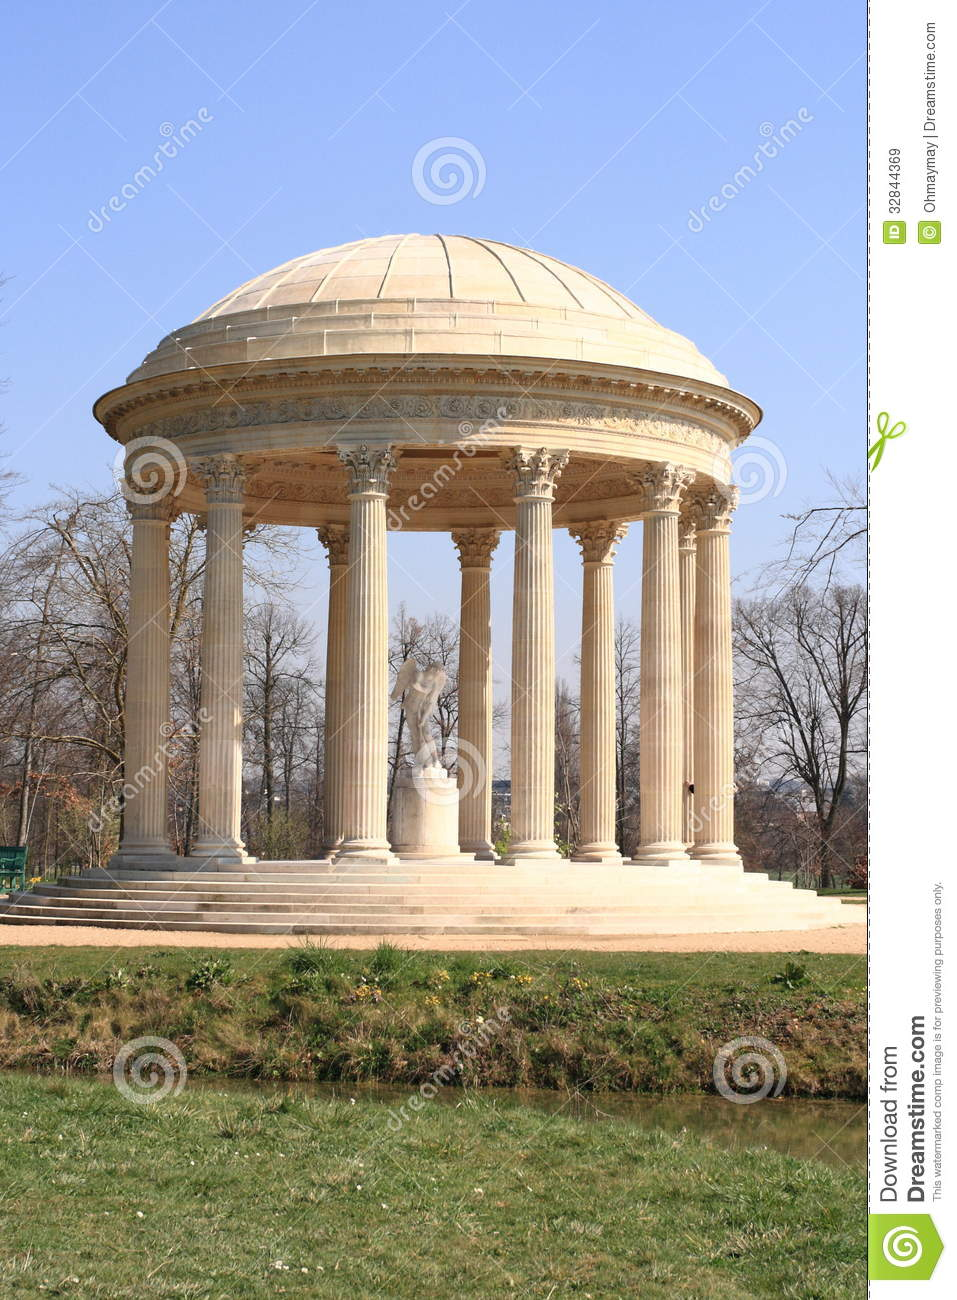 French Garden Pavilion Royalty Free Stock Images Image 32844369